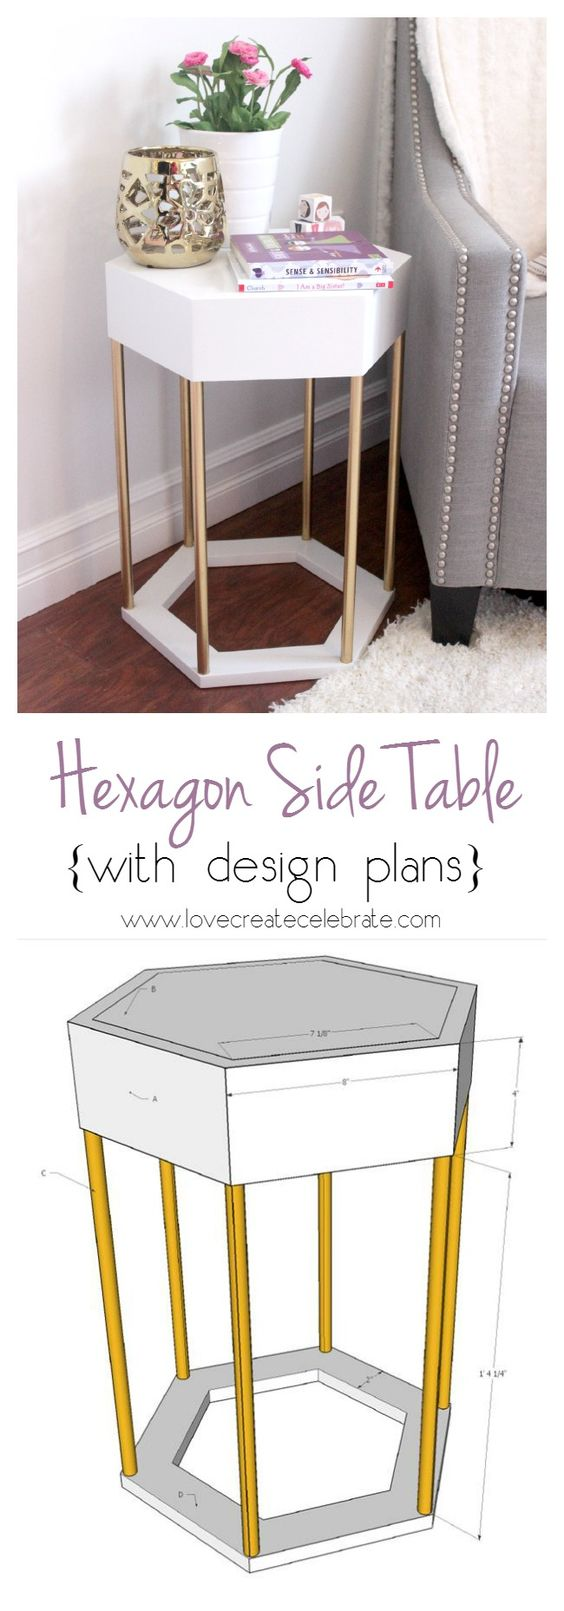 awesome diy side table ideas for outdoors and indoors hative tutorials accent plans modern hexagon commercial black lamp shades sliding barn doors made coffee sofa small living